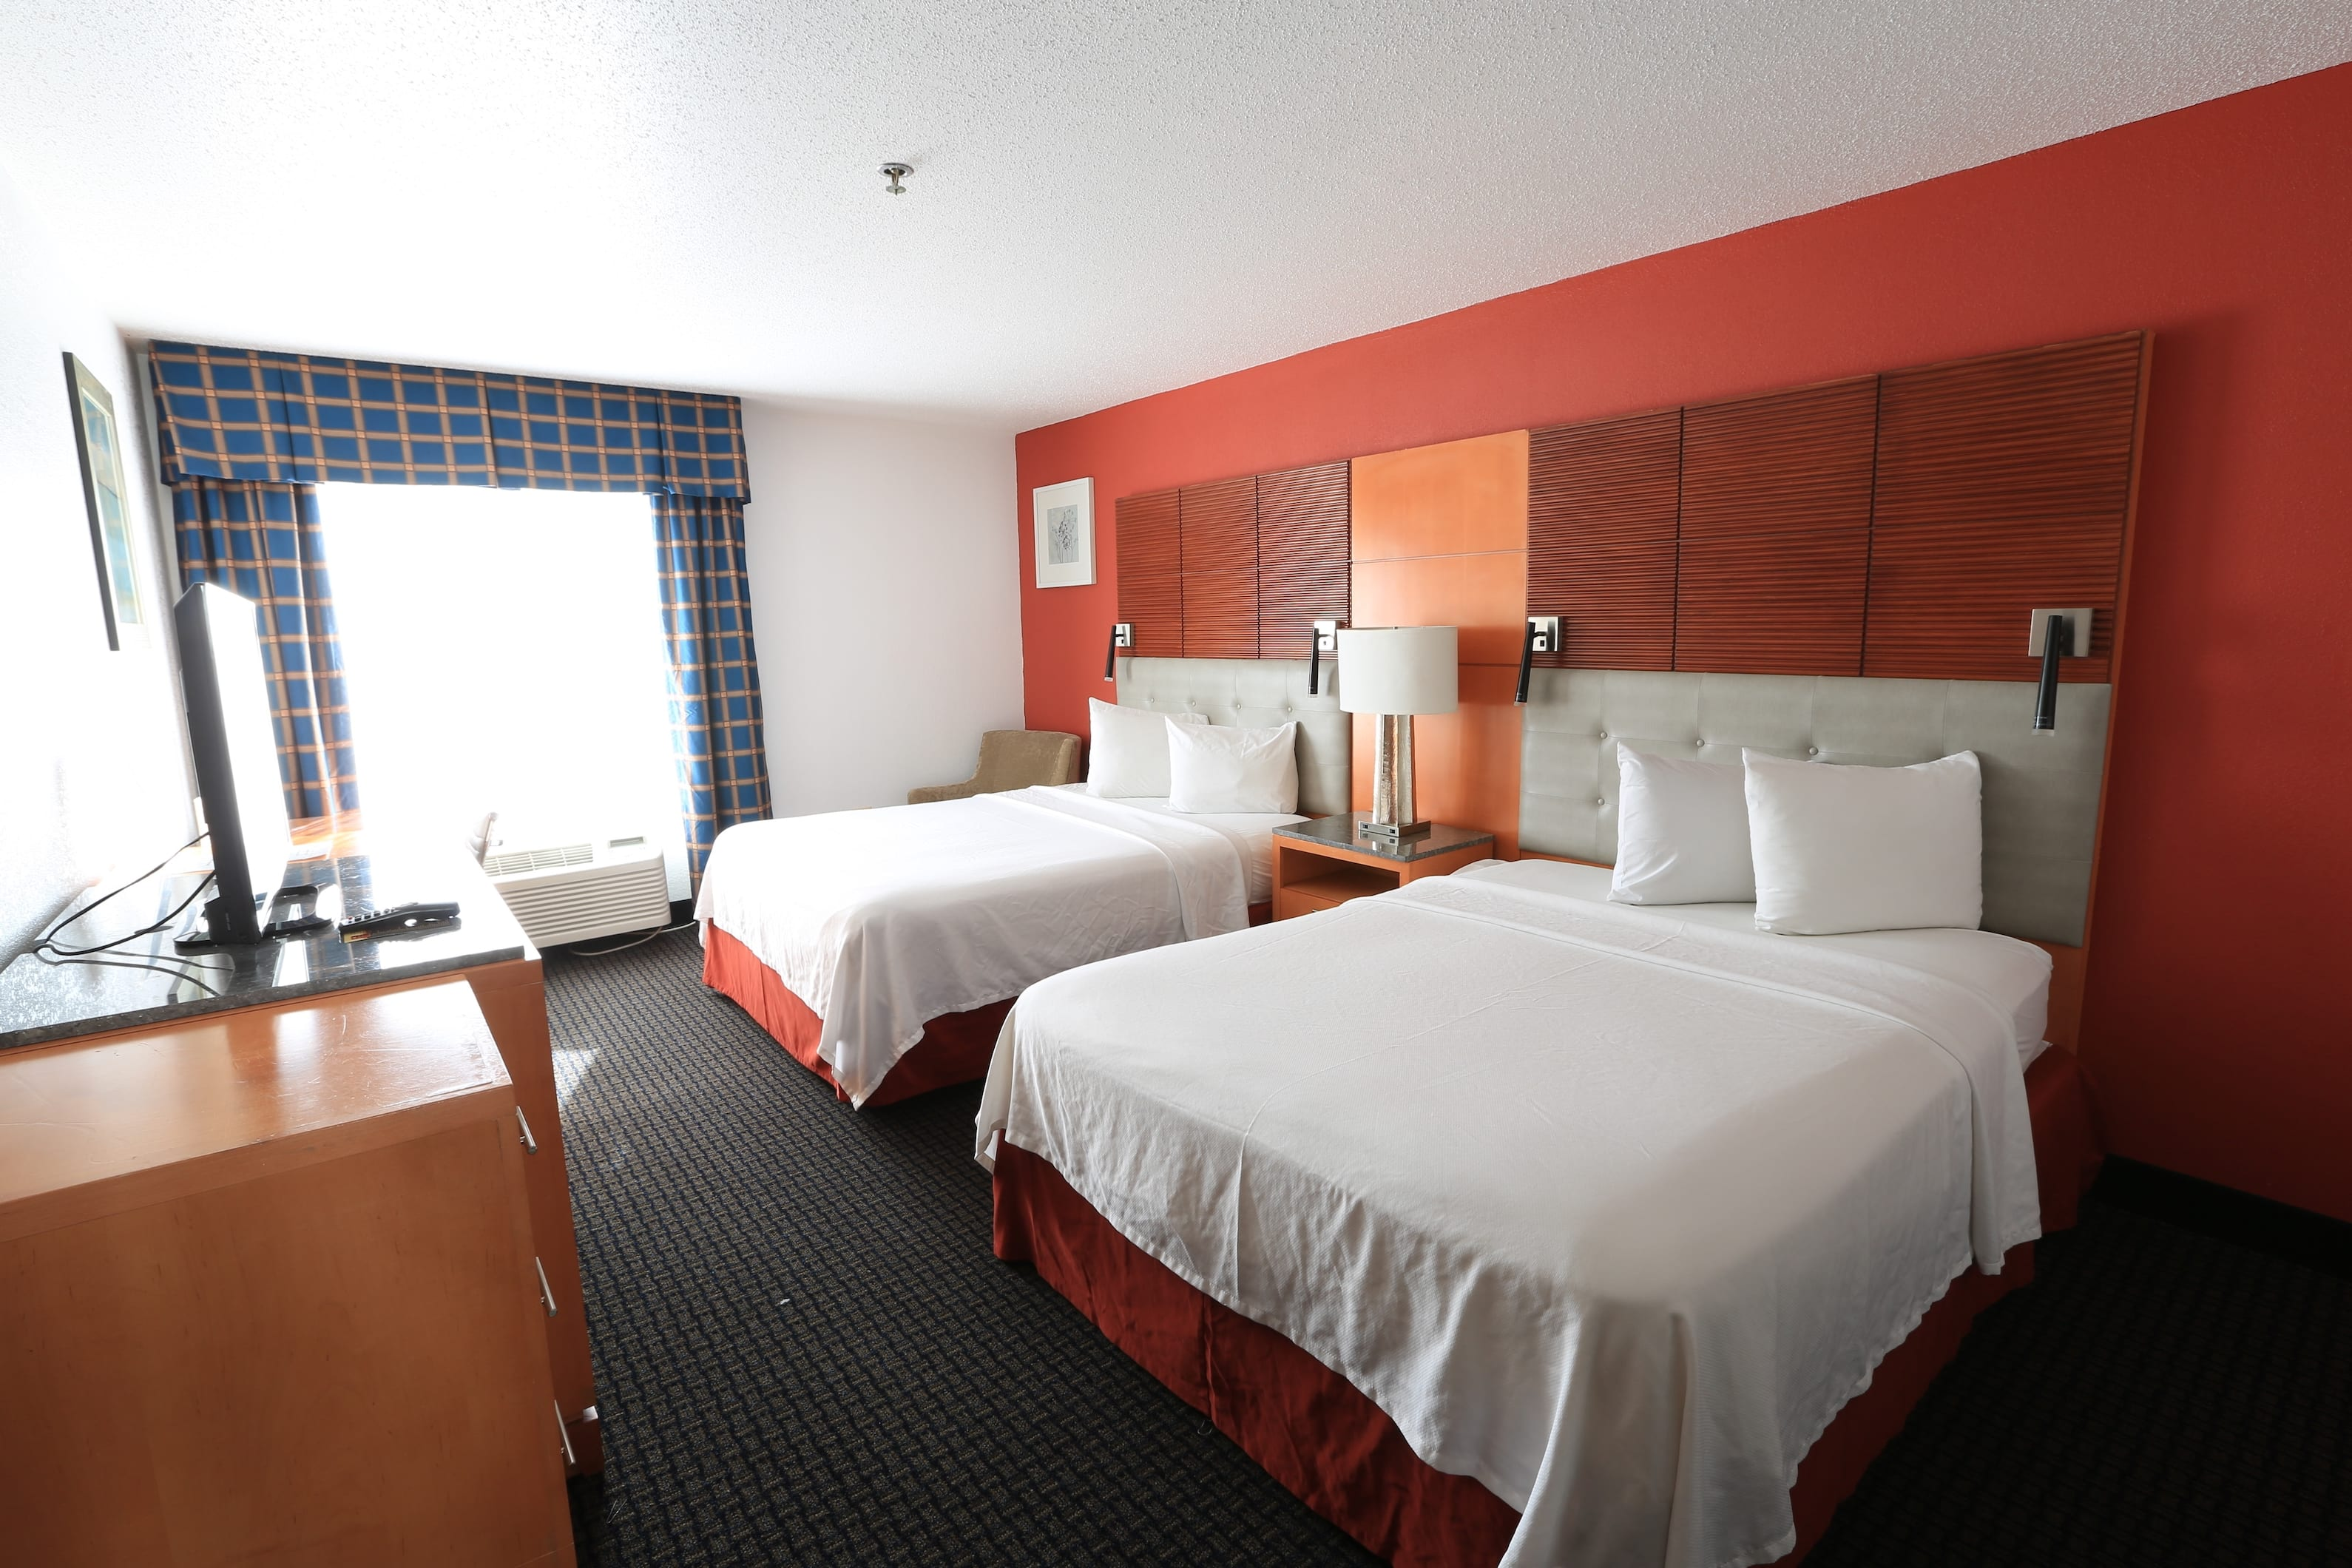 Guest room at the Days Inn by Wyndham Calumet Park in Calumet Park, Illinois